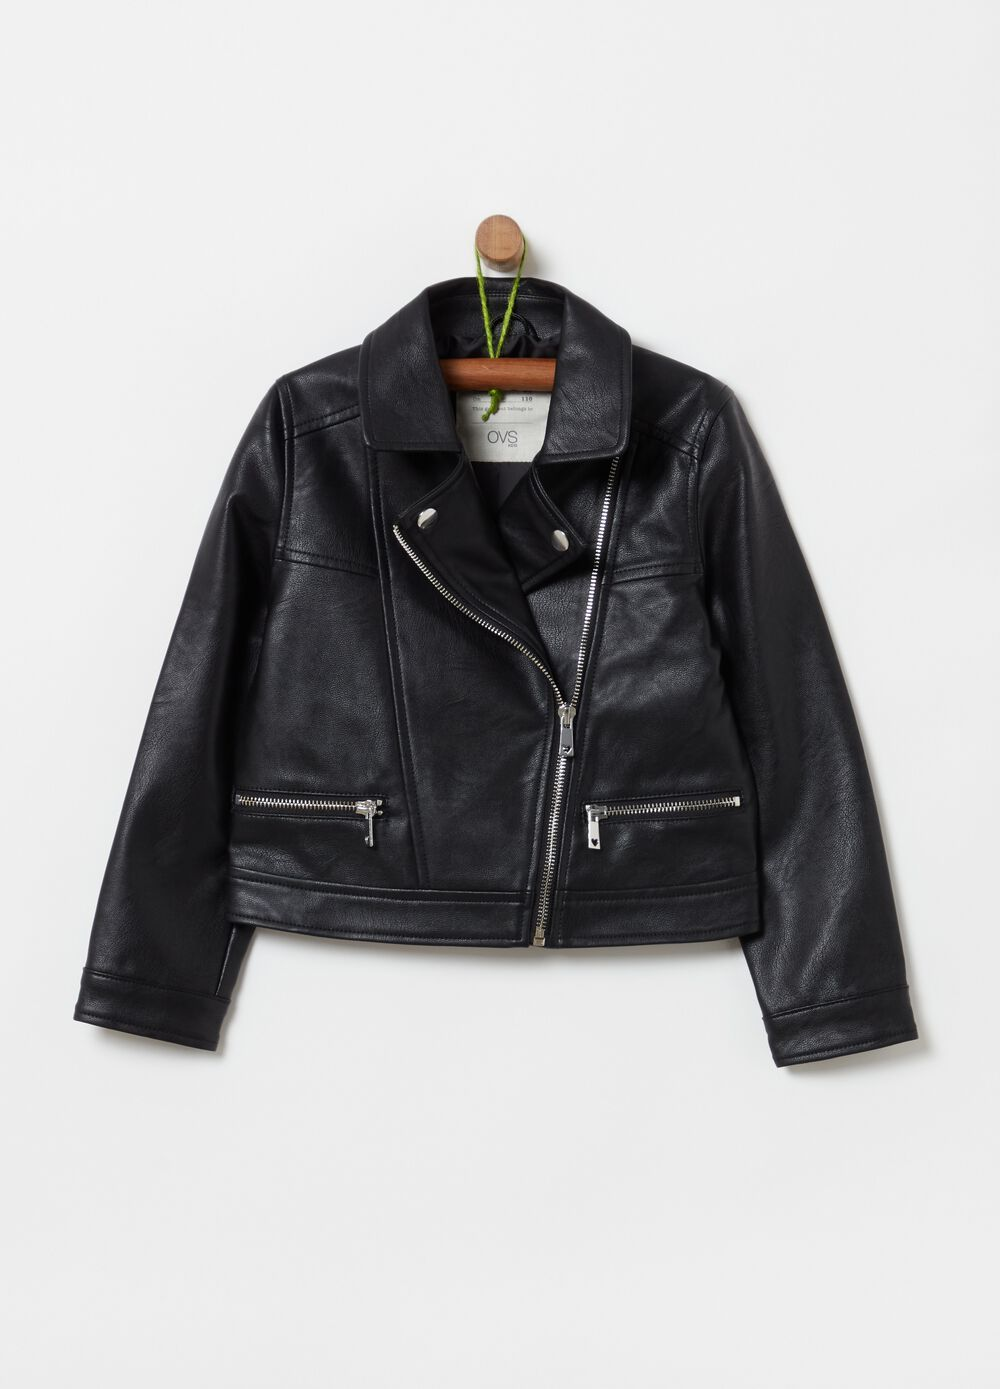 Faux leather jacket with pockets and zip